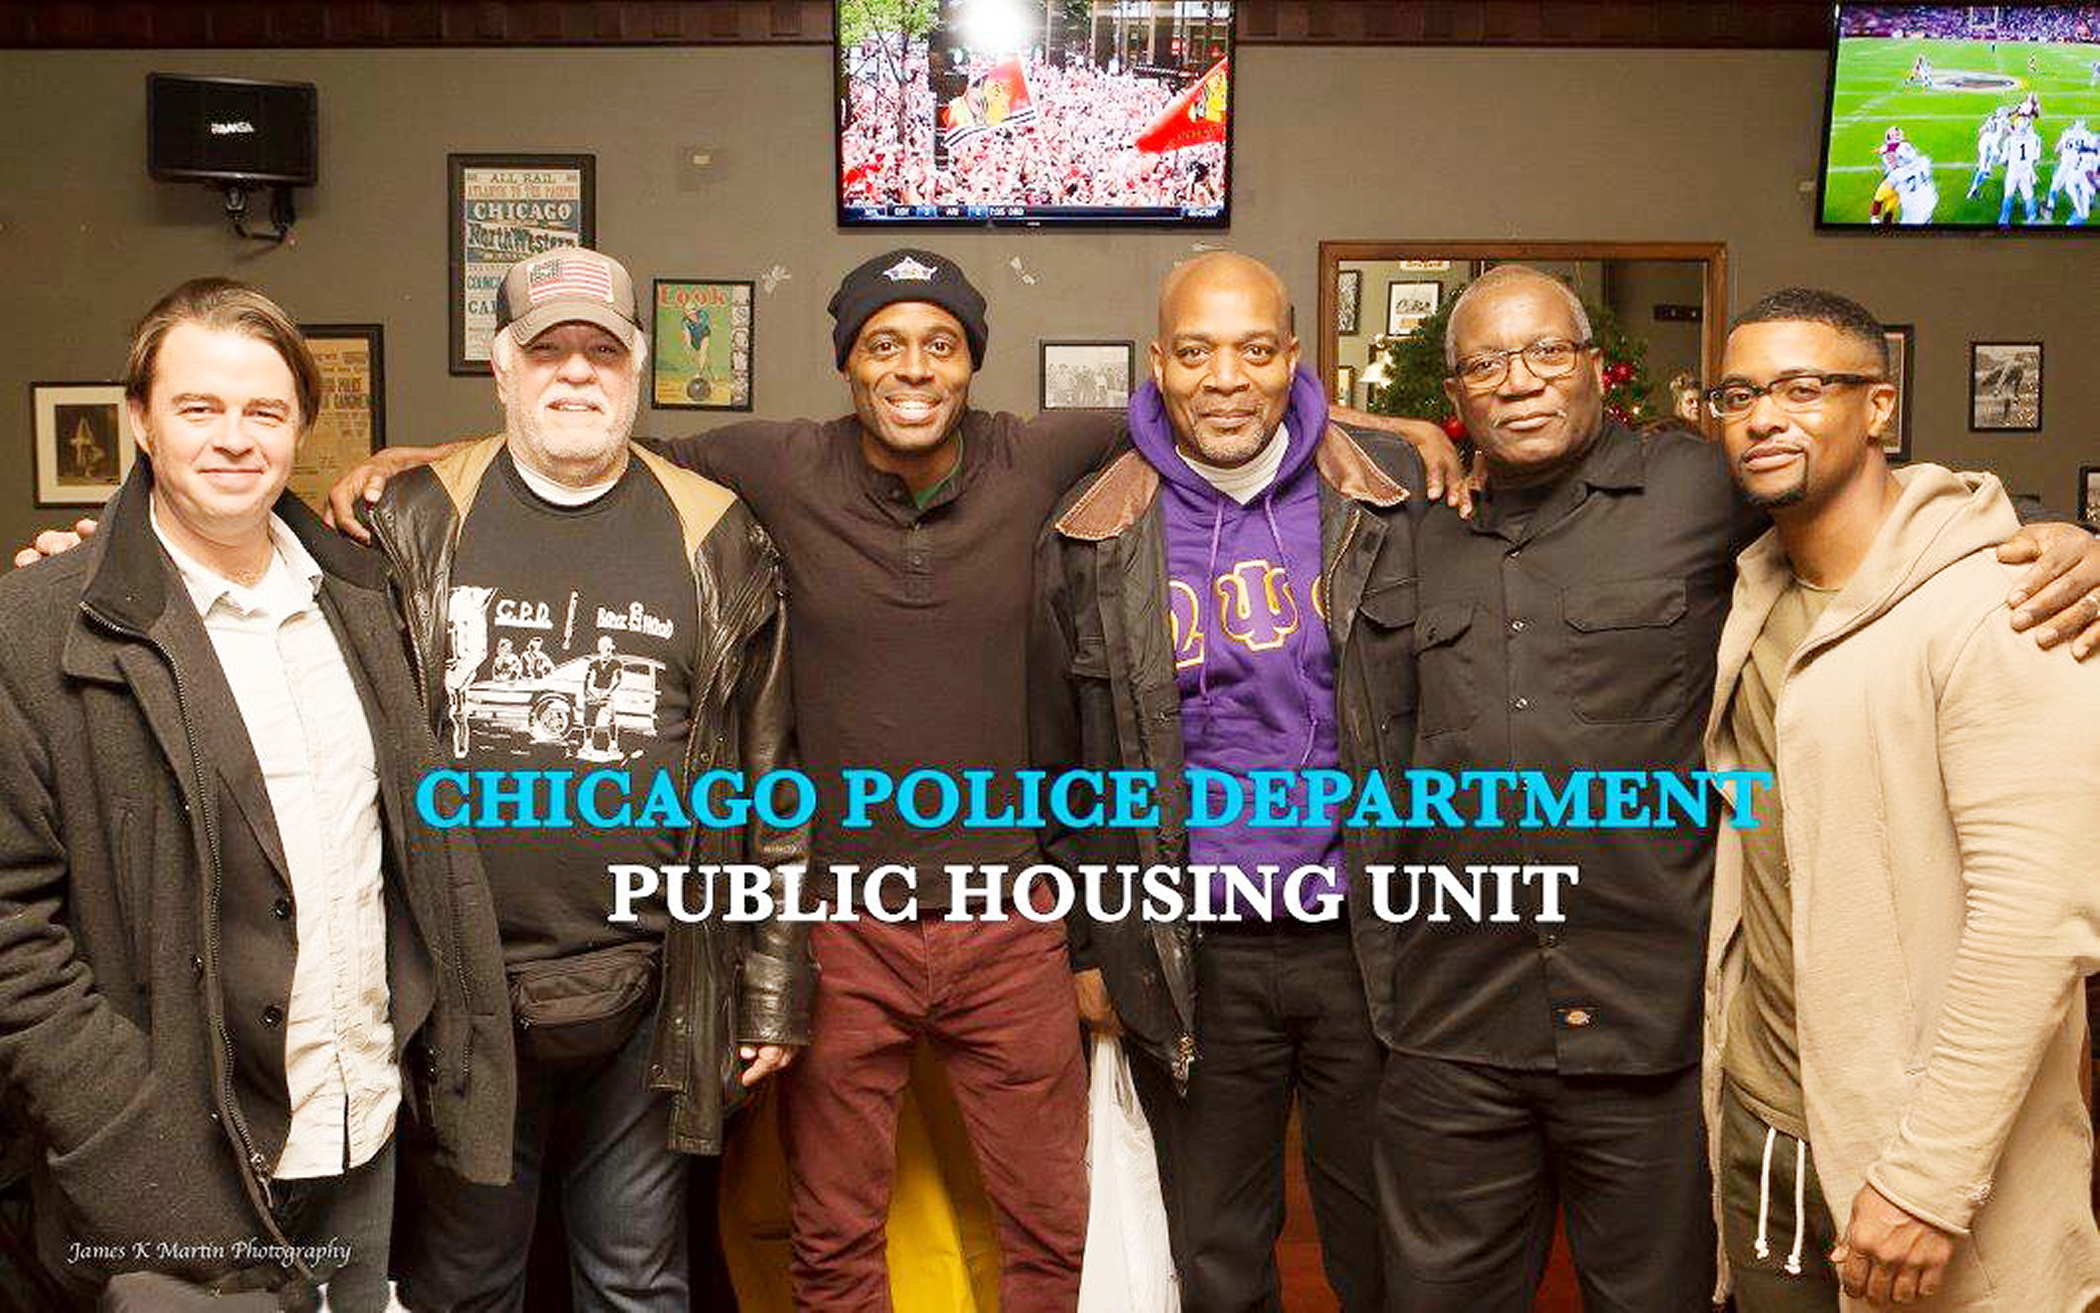 """Public Housing Unit"" lead actor Ira Amyx, Charlie Toussas, lead actor Chris Boykin, Eric Davis, Jimmy Martin, lead actor Kamal Bolden"